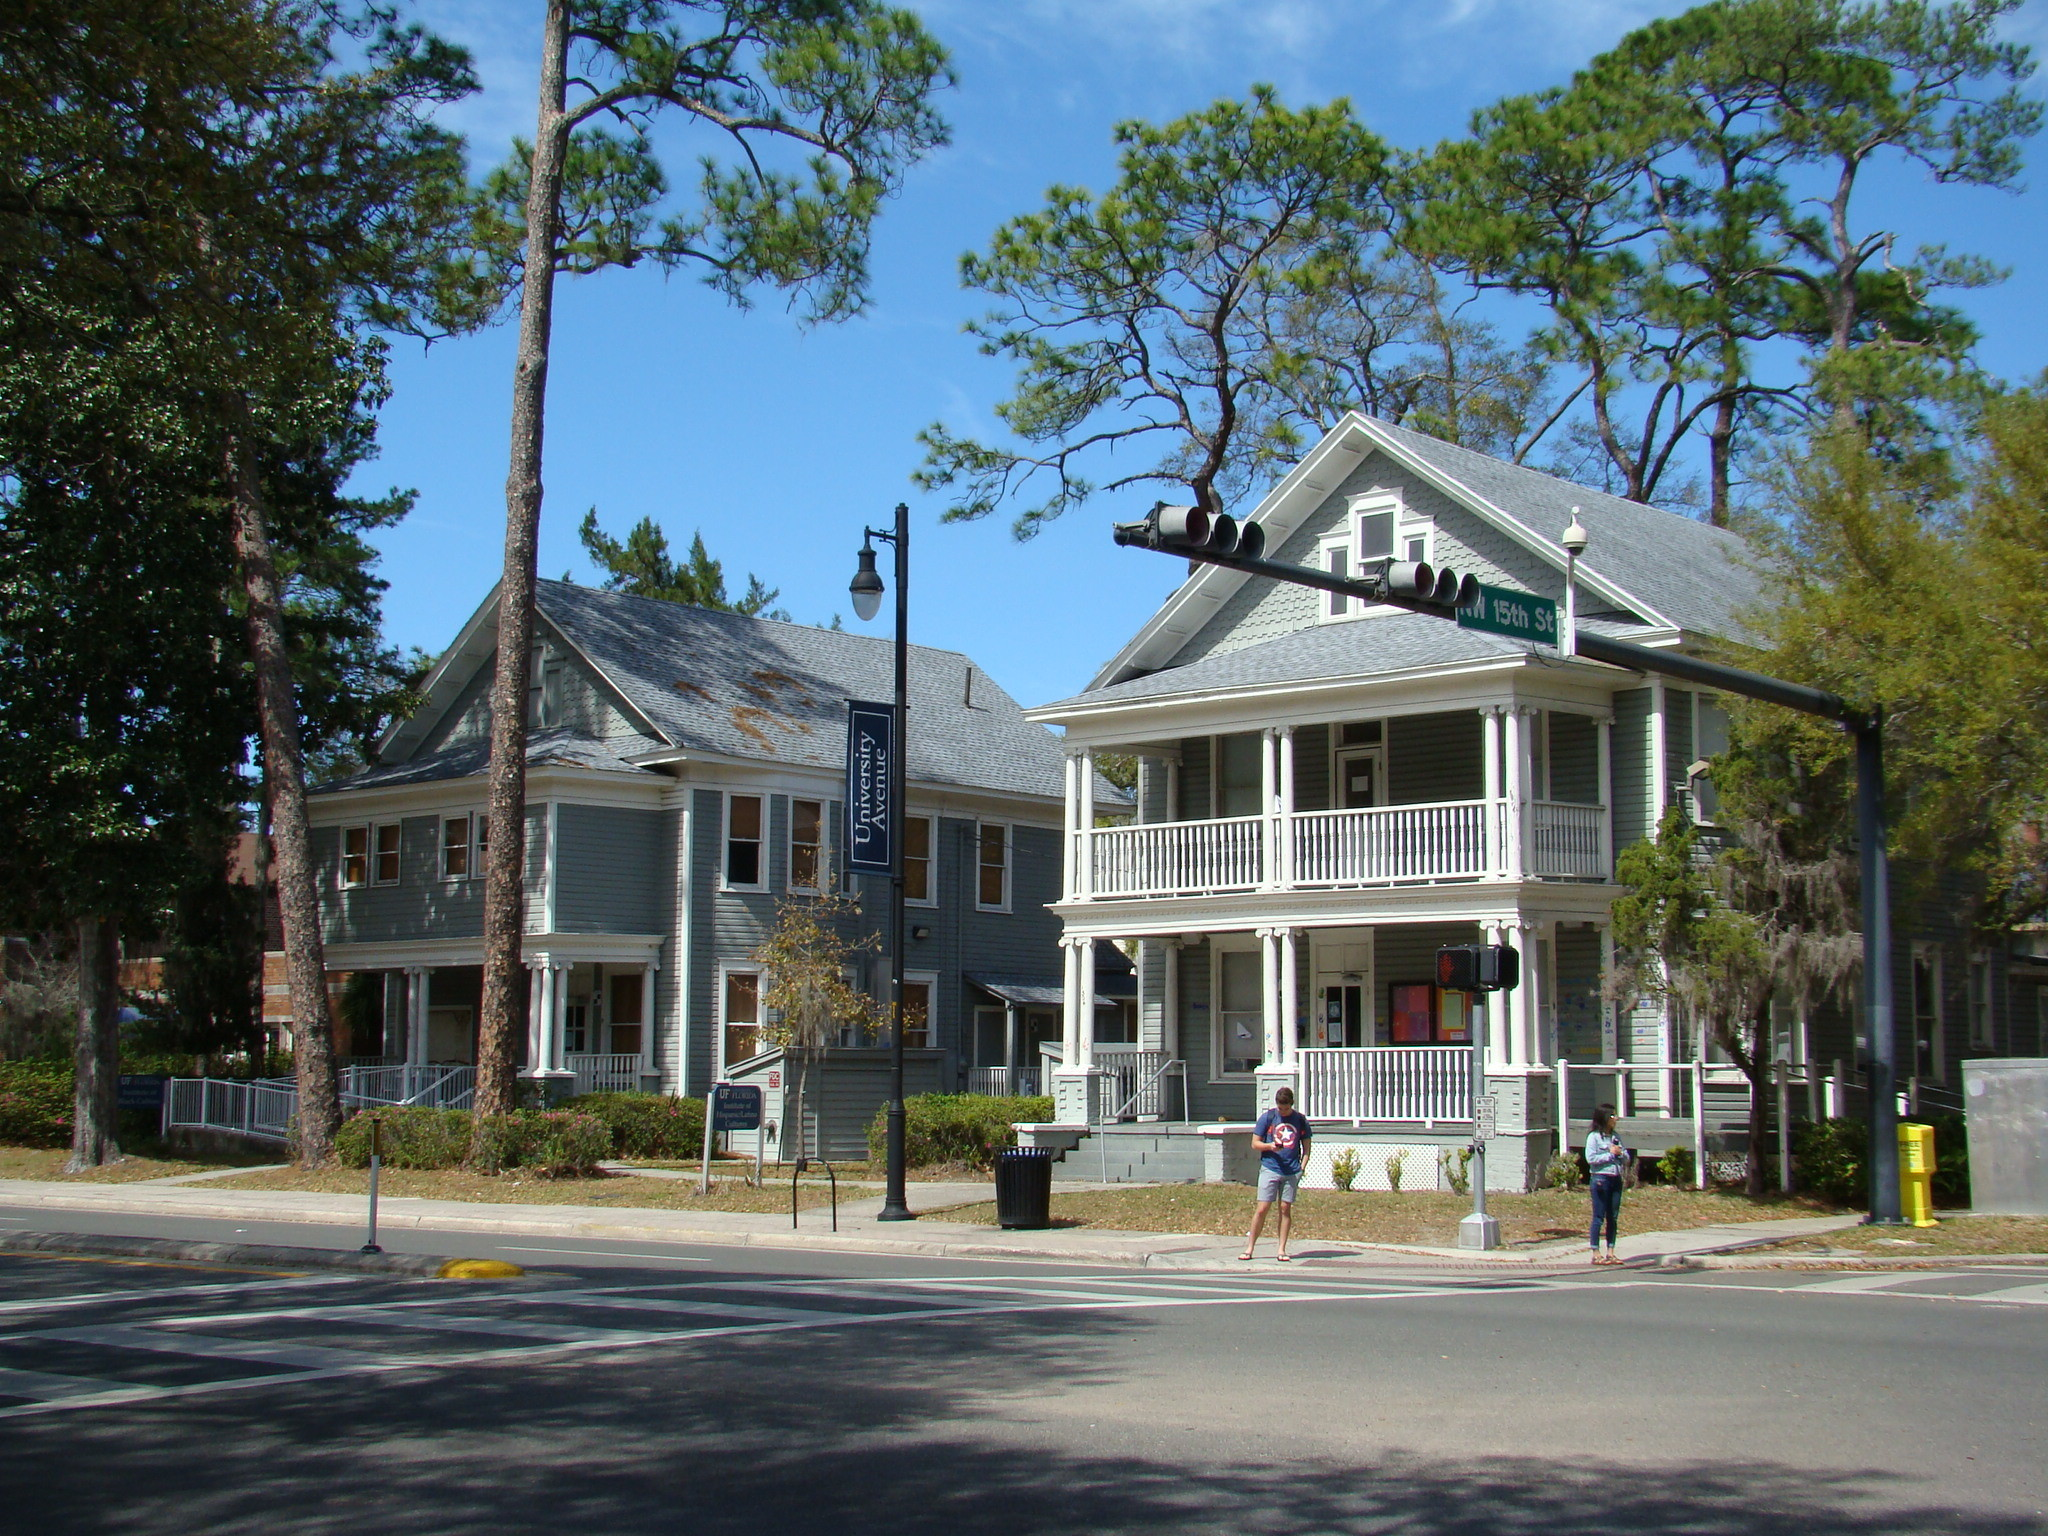 2017_11toSave_LaCasitaCulturalCenters. Historic Neighborhoods and Resources  surrounding the University of Florida